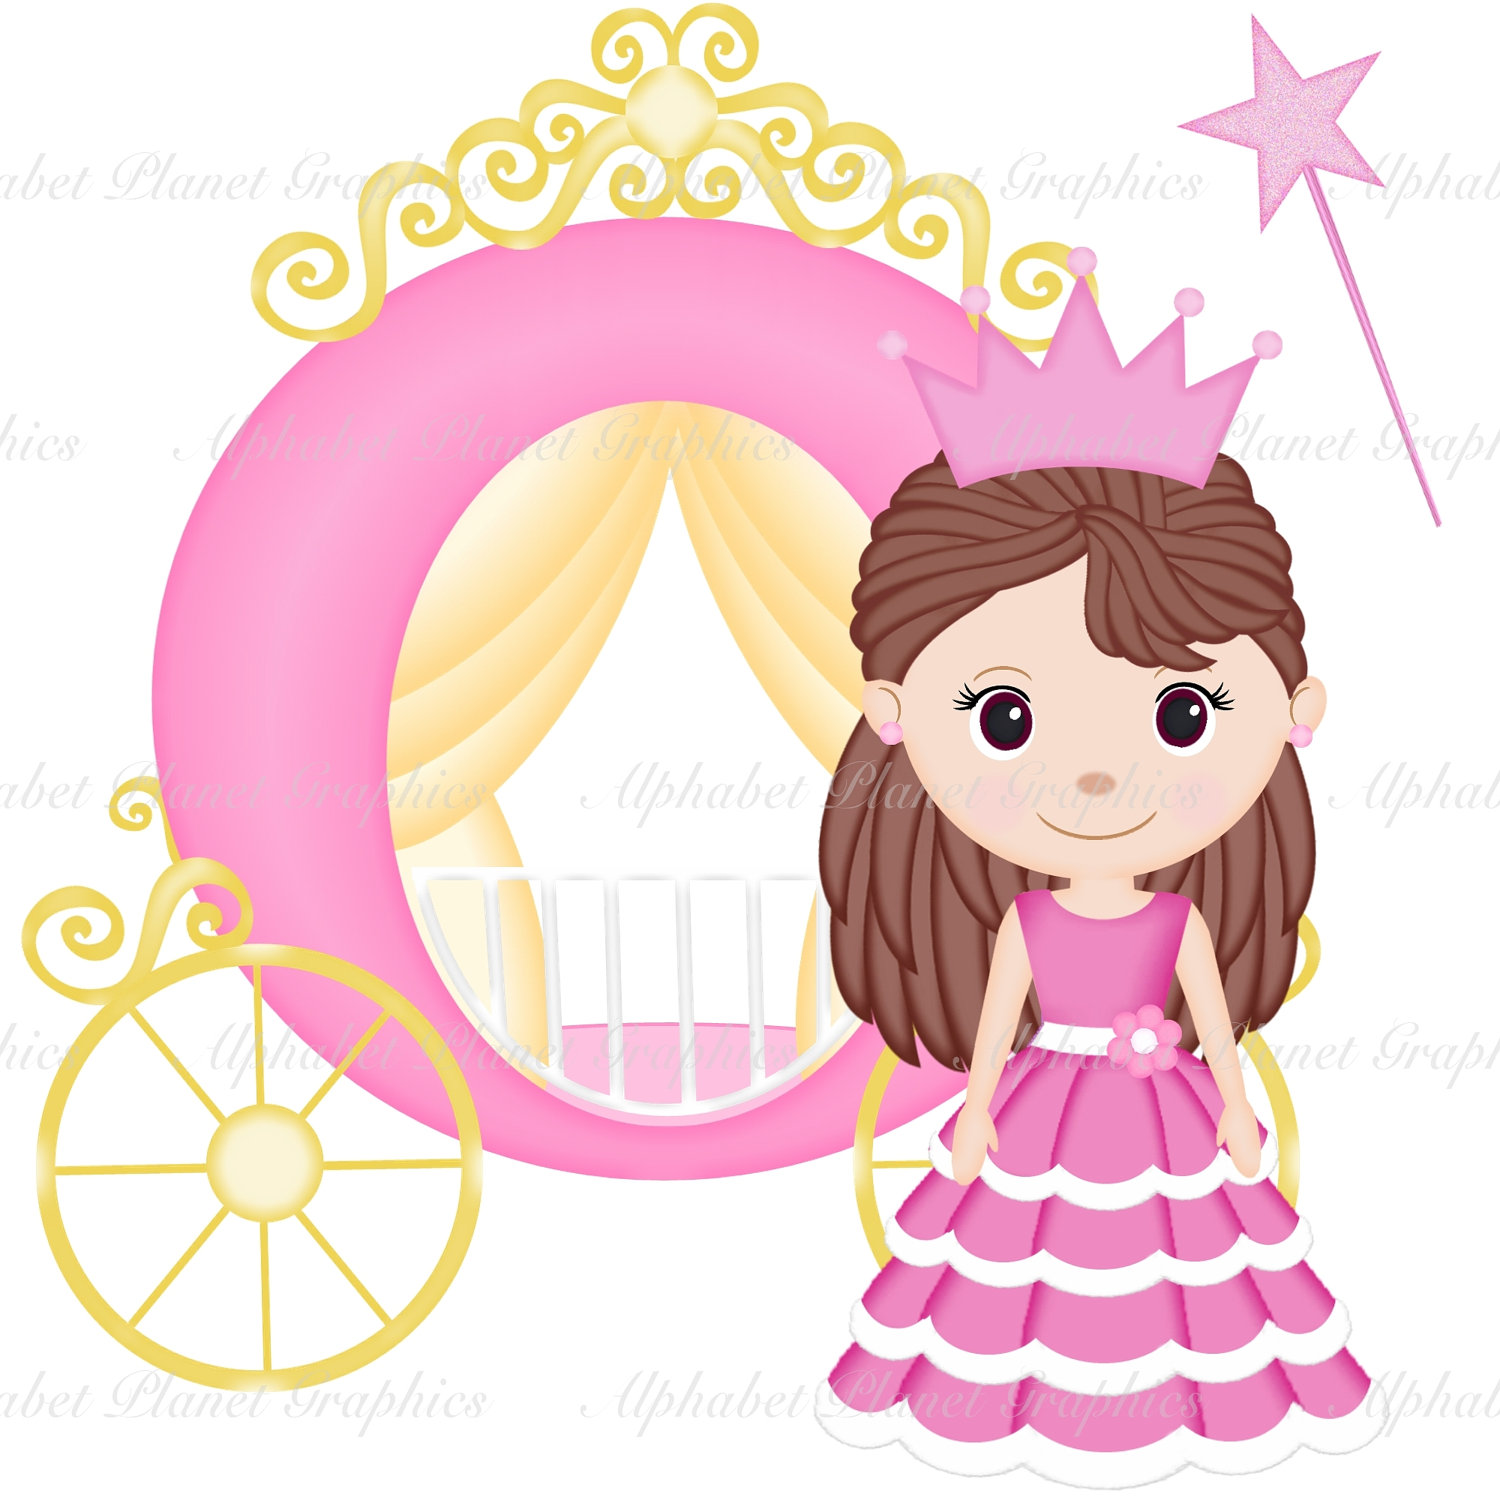 Free princess clipart the cliparts 2